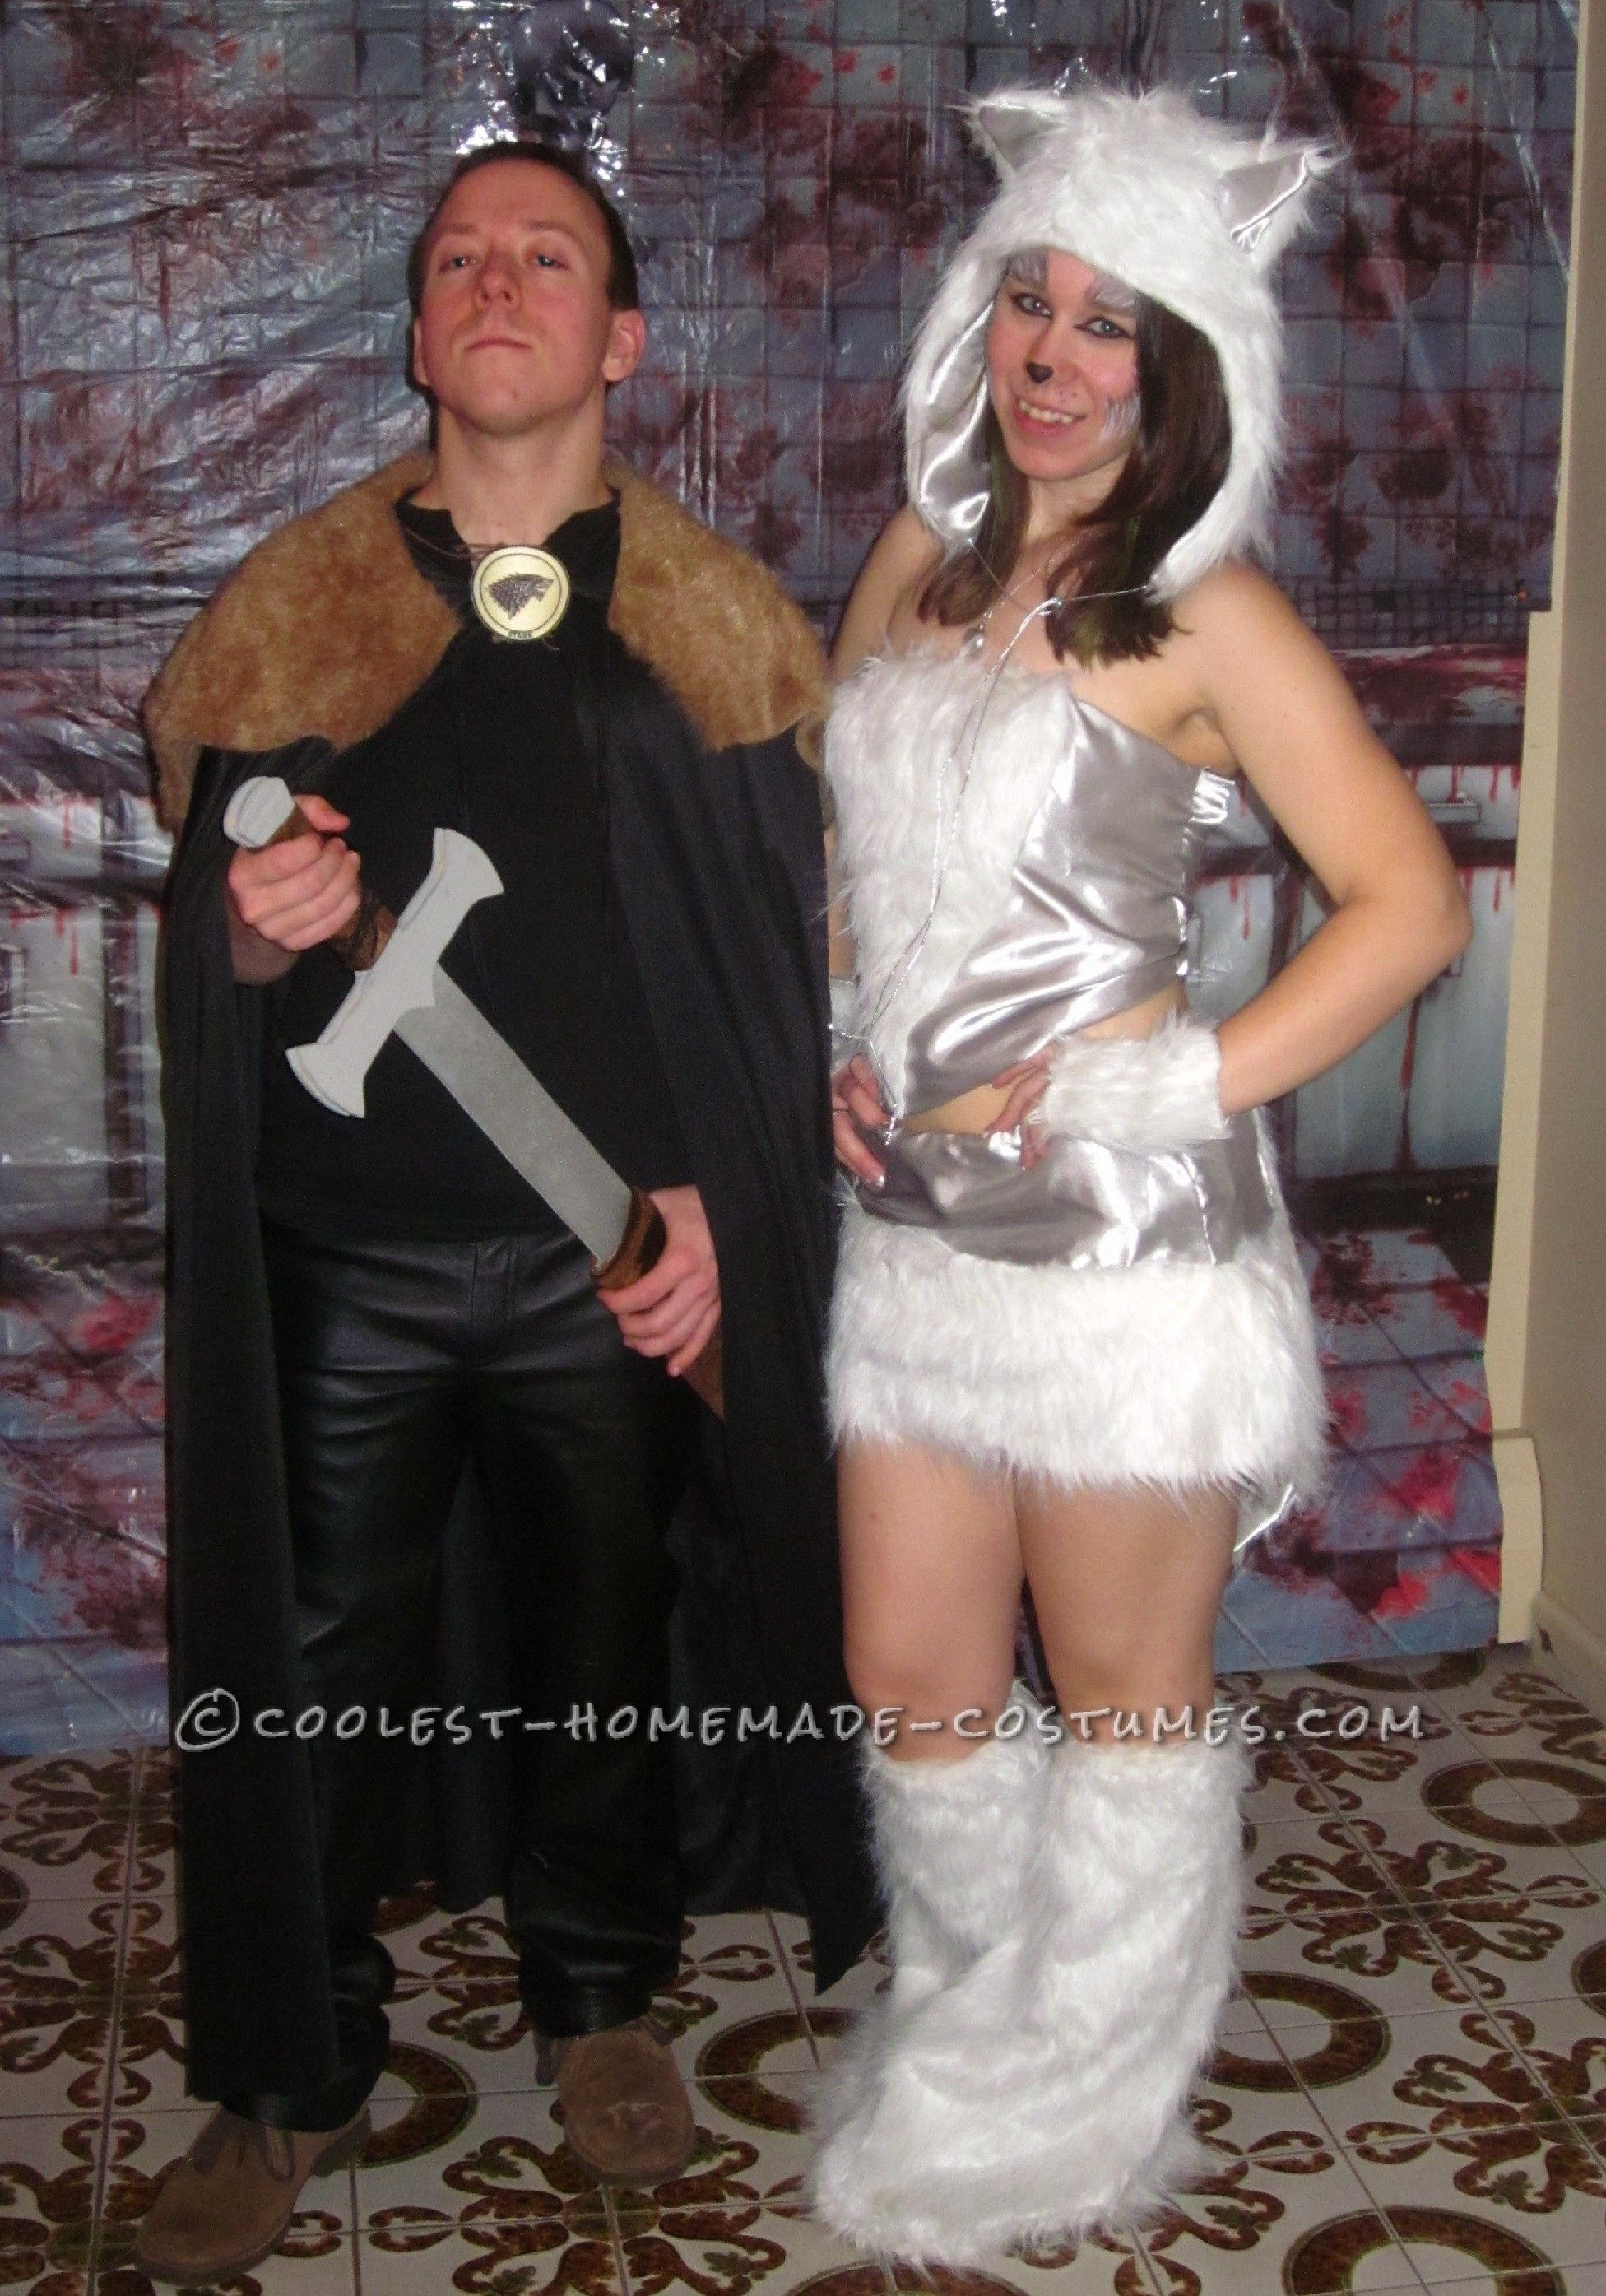 Homemade Costume Contest Cool Jon Snow and Ghost Homemade Couple Costume  sc 1 st  Pinterest & Cool Jon Snow and Ghost Homemade Couple Costume | Homemade couples ...